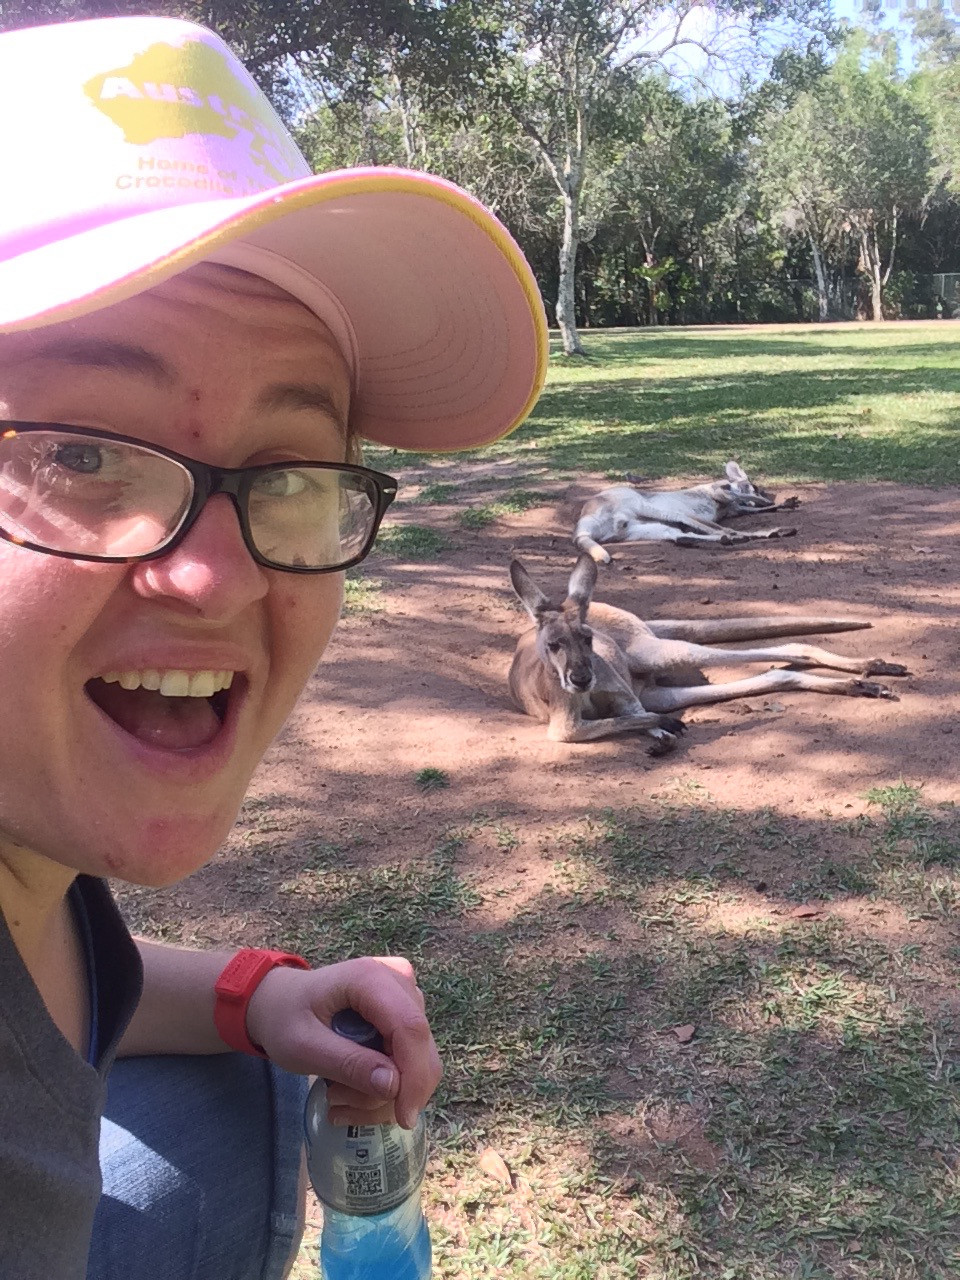 Hanging out with the locals in Australia on my layover!